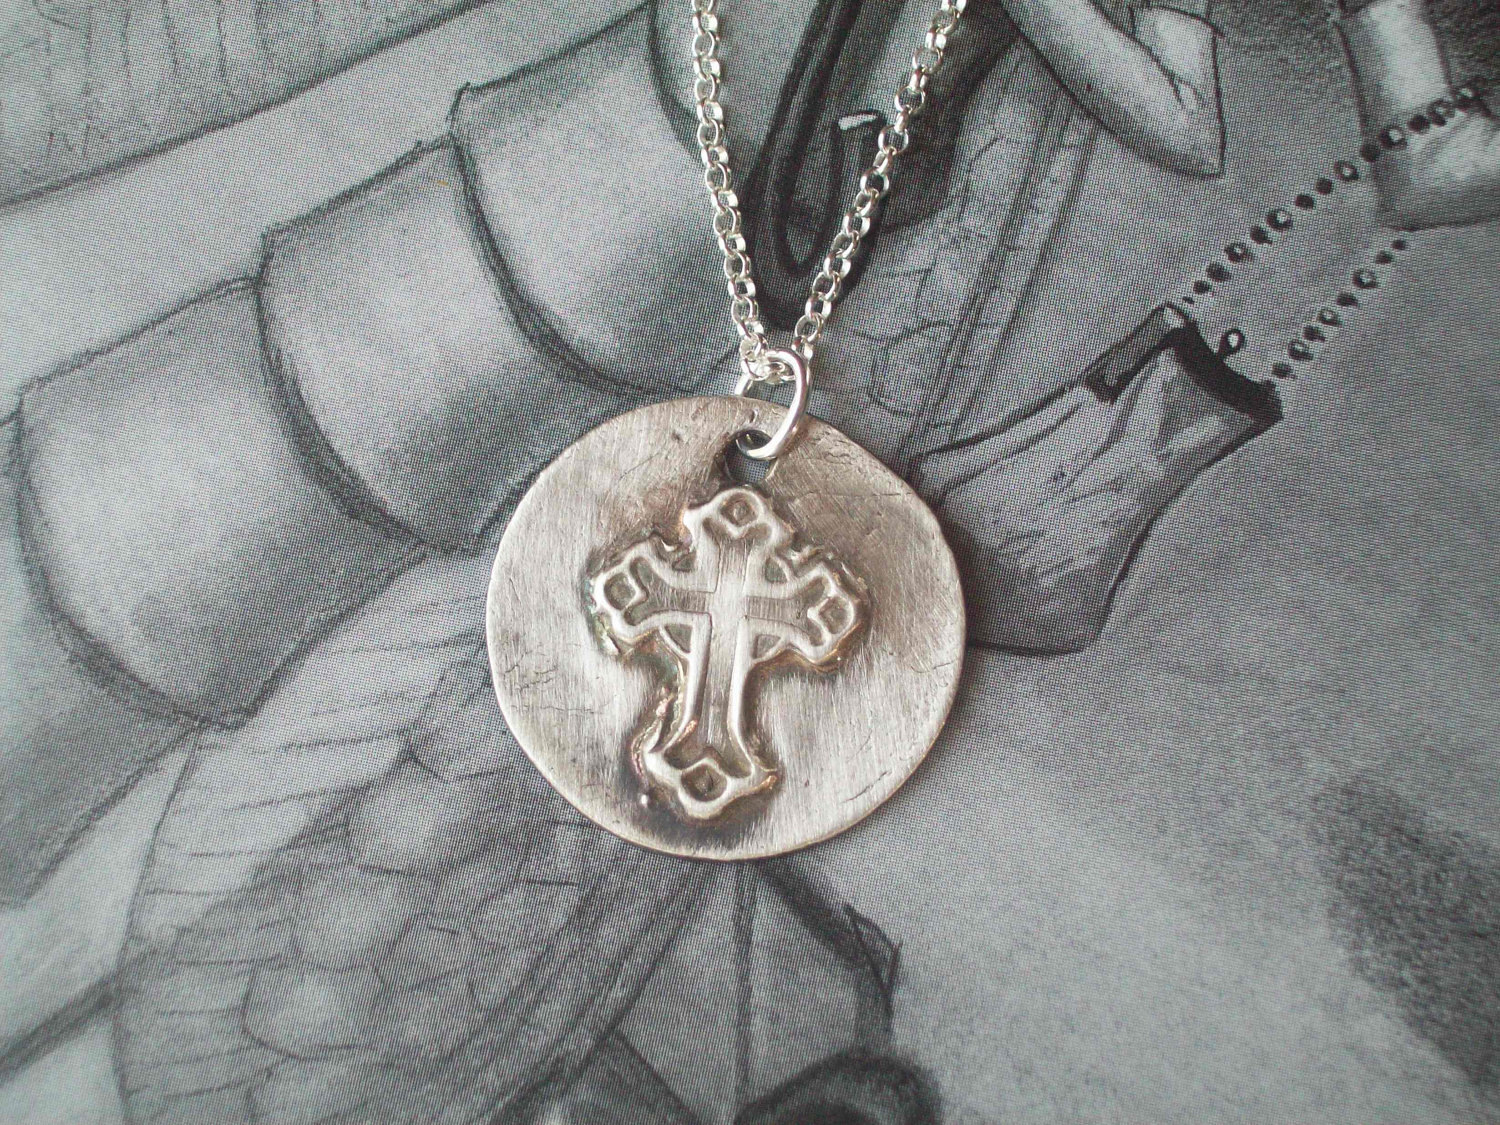 Fine Silver Circle Embossed Cross Pendant on chain or leather